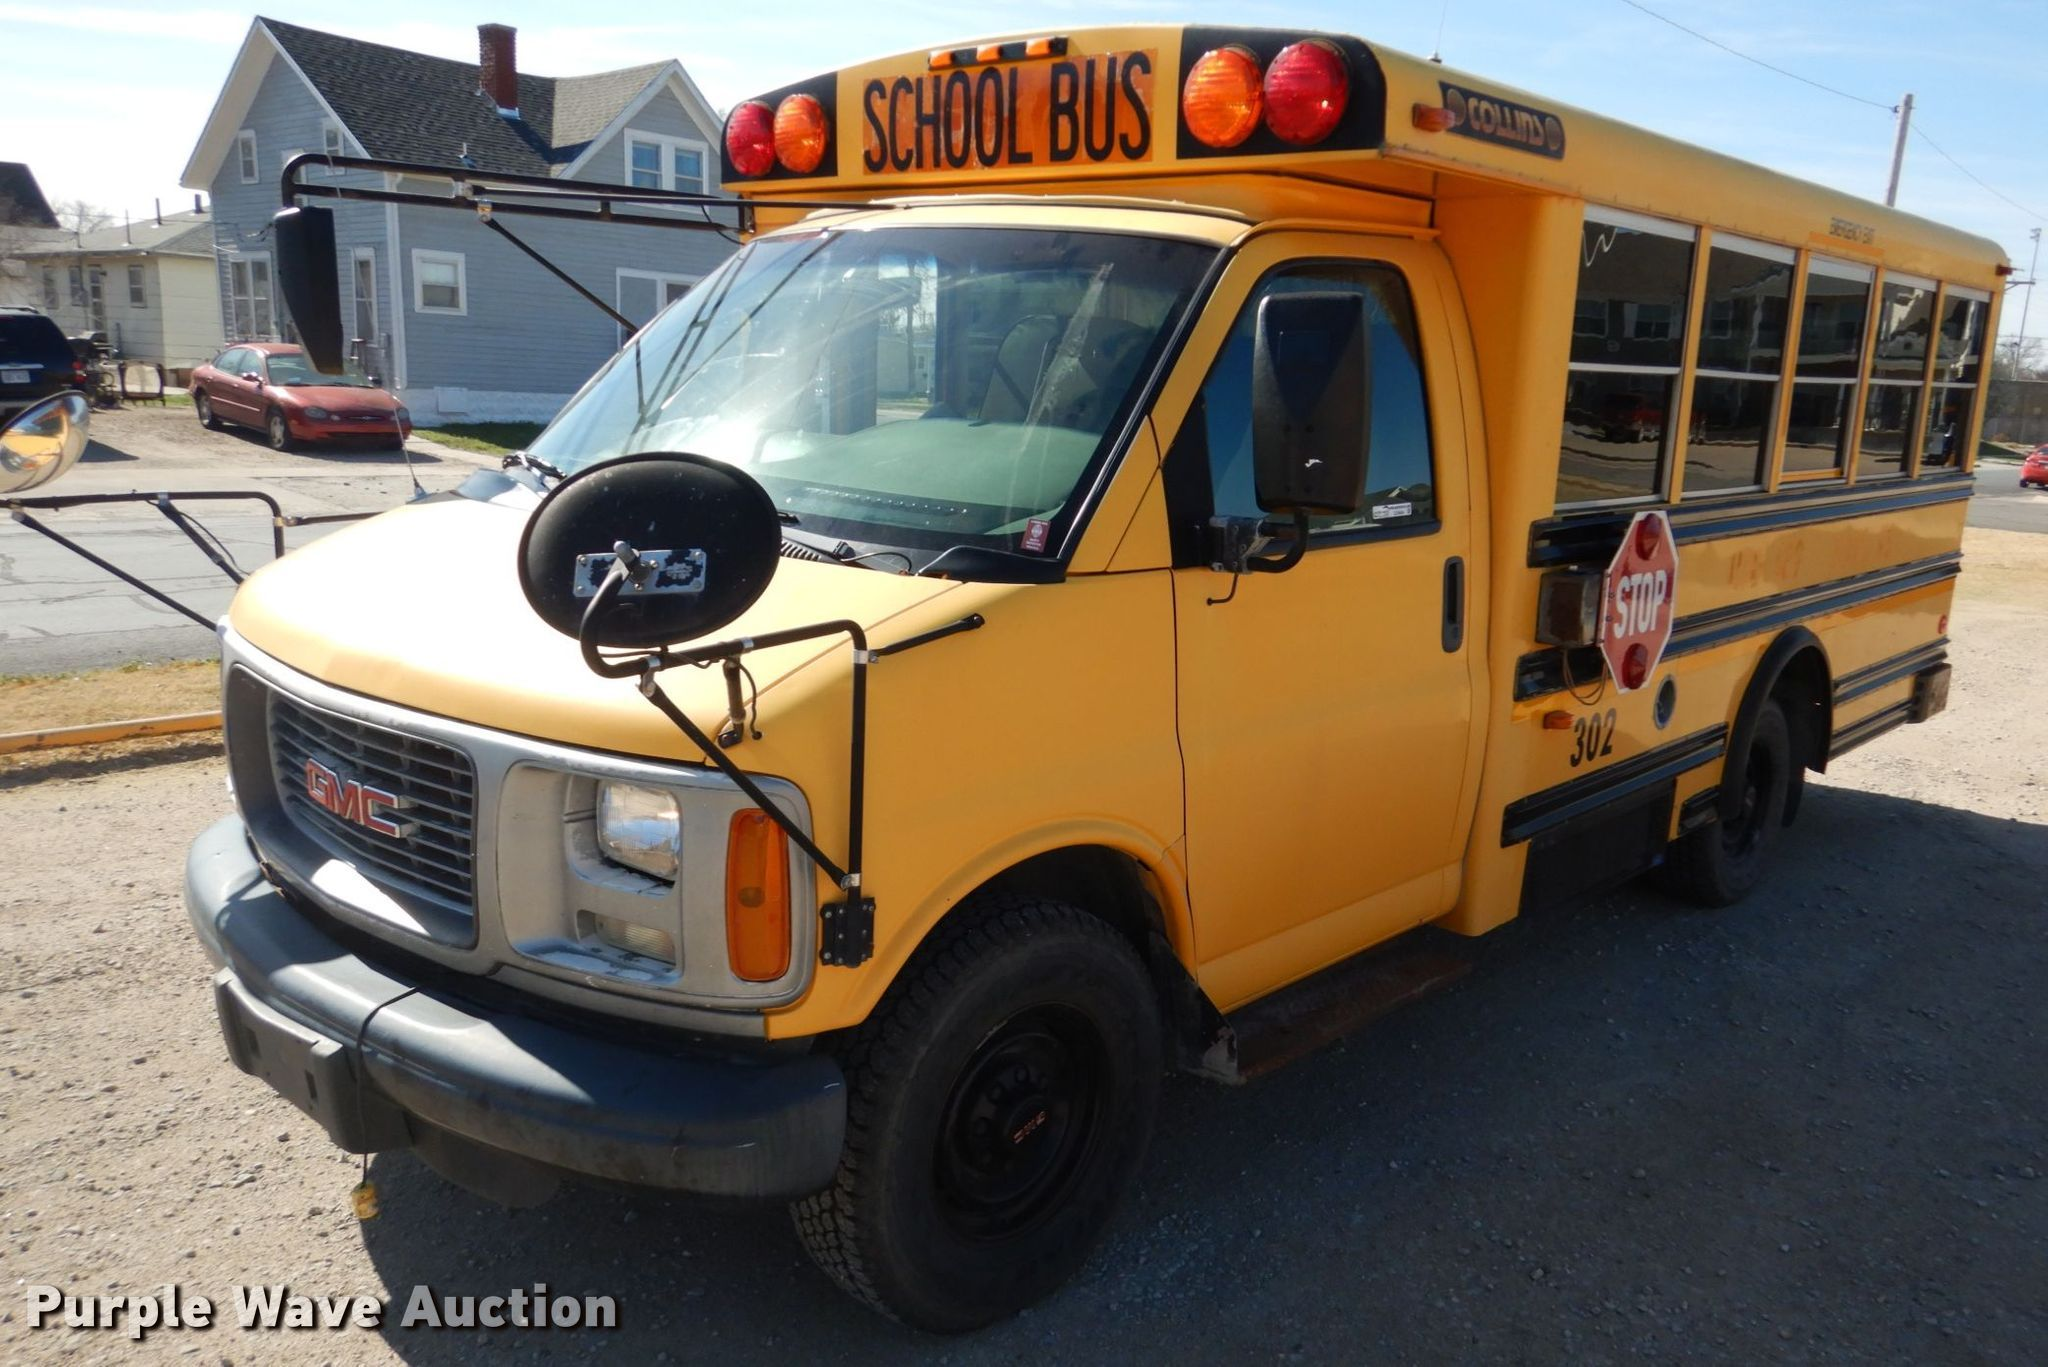 2001 gmc savana g3500 collins school bus in hays ks item gx9894 sold purple wave 2001 gmc savana g3500 collins school